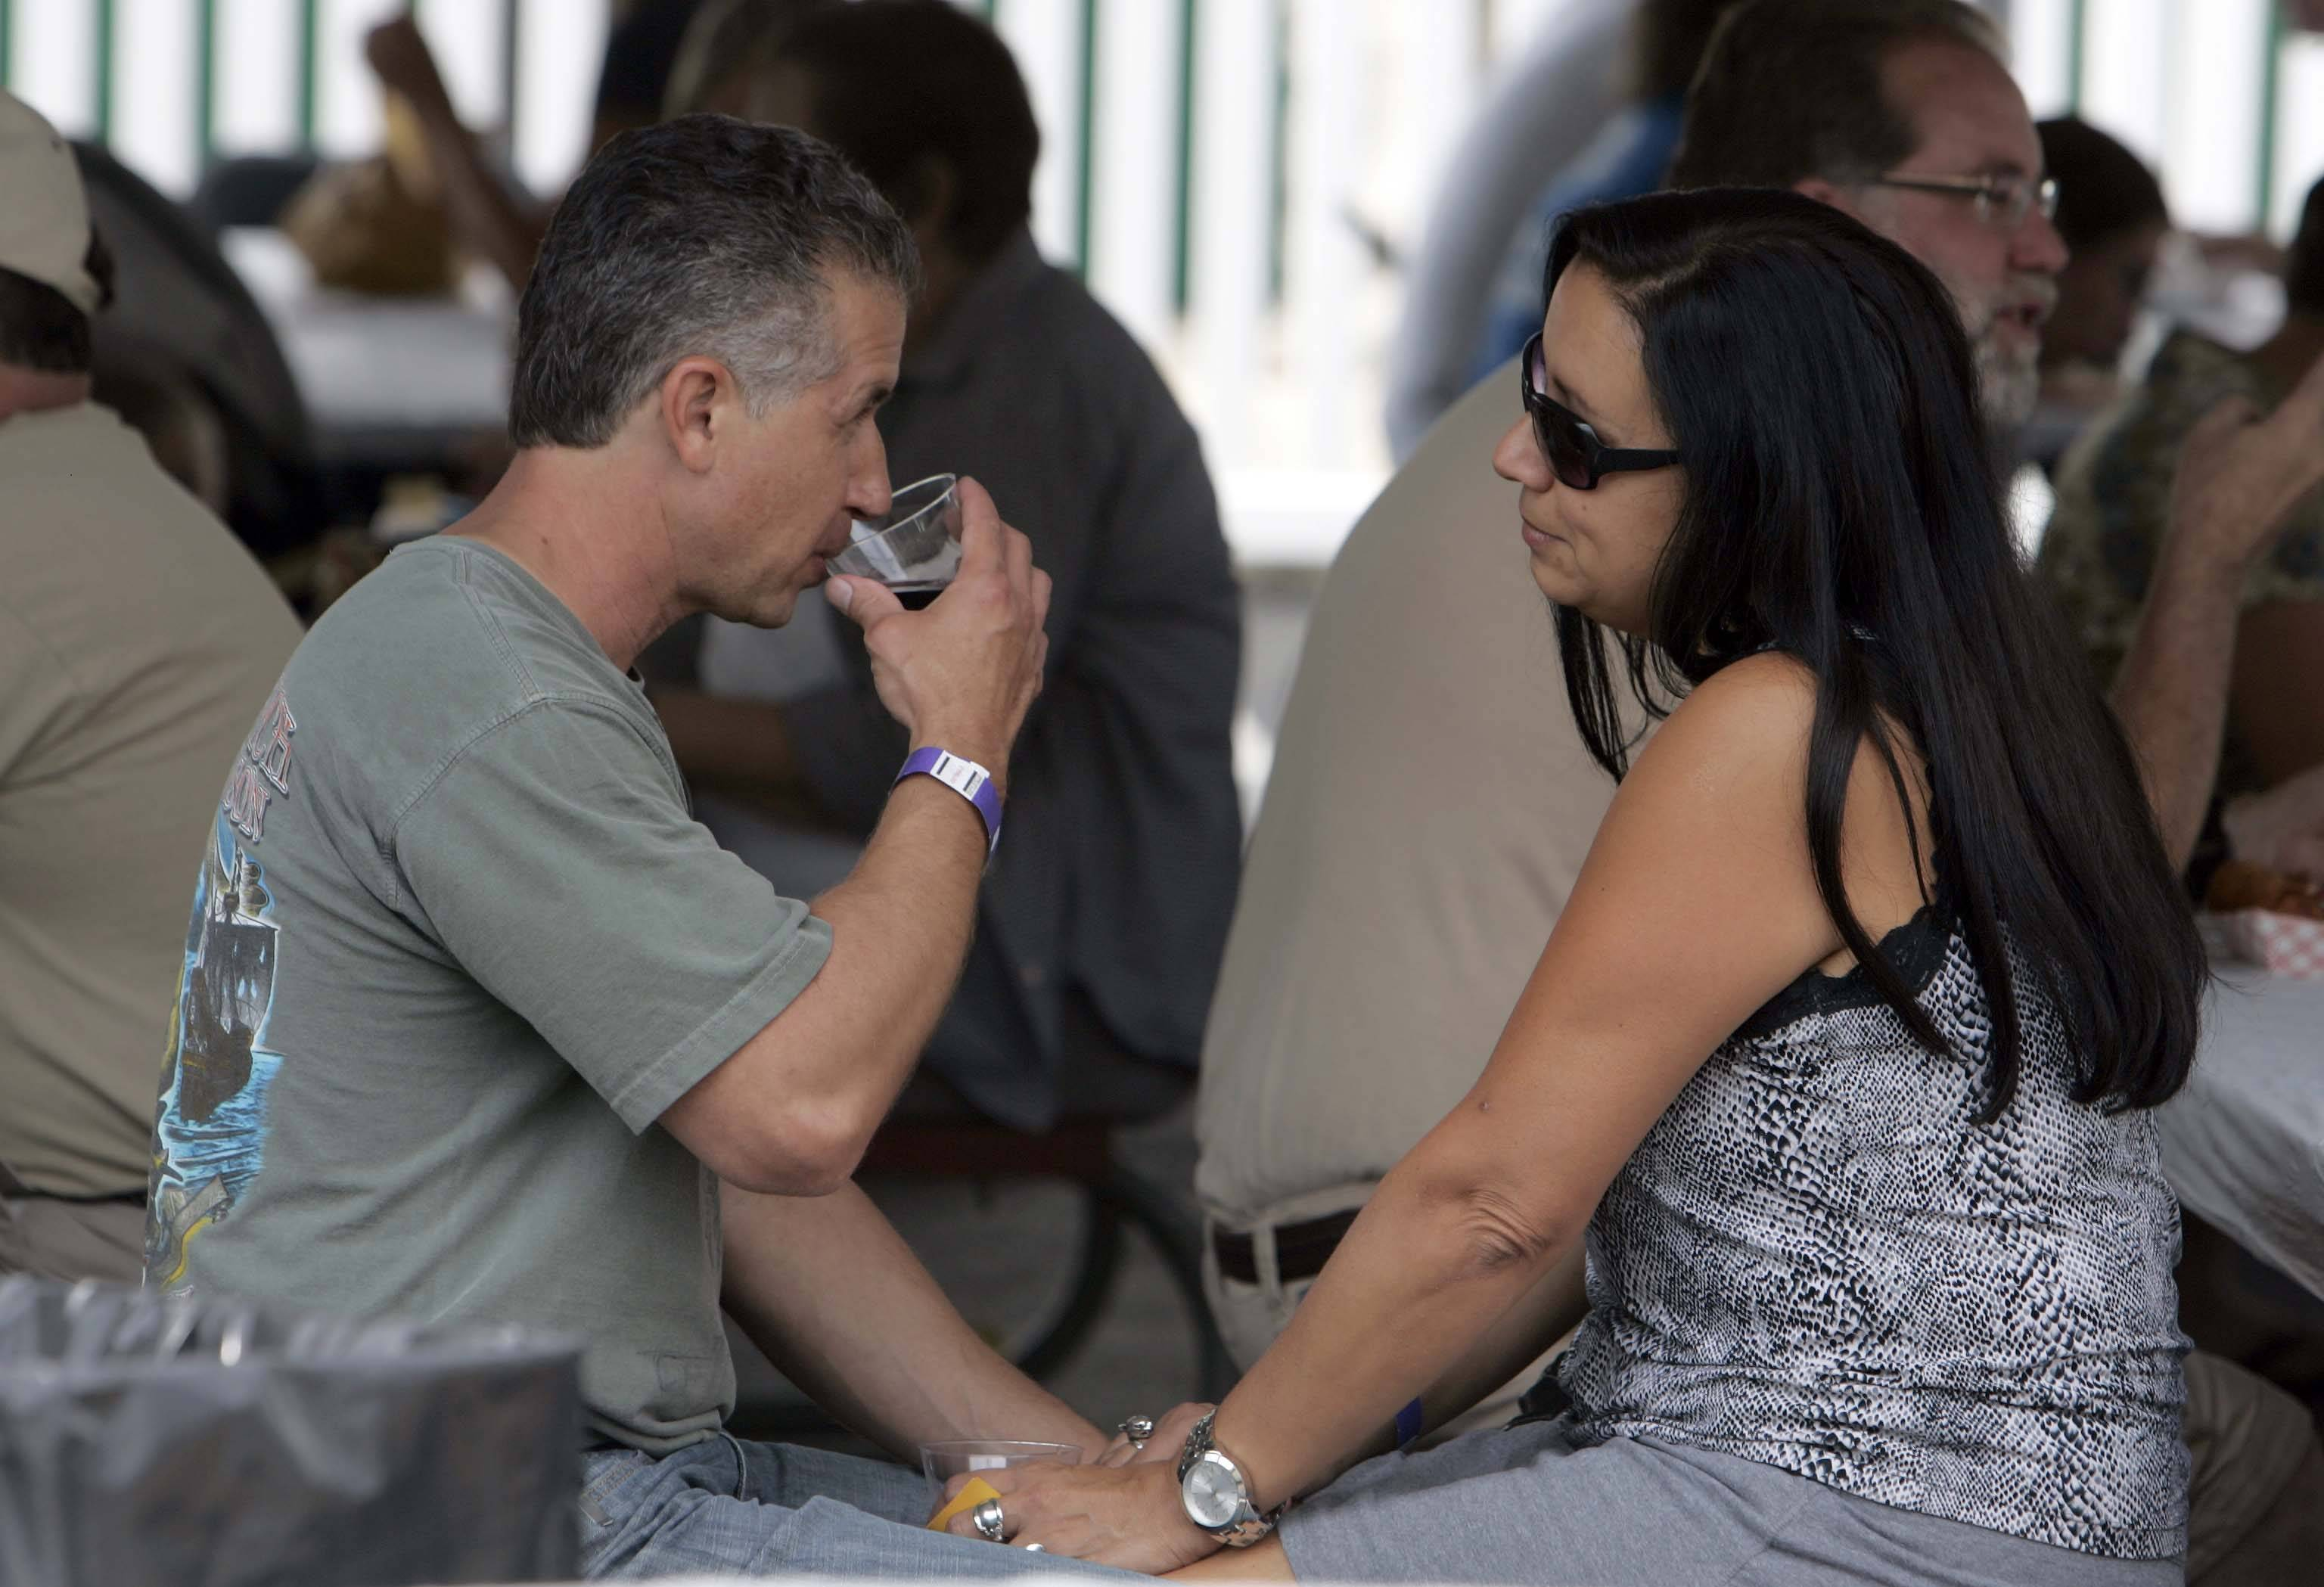 Angelo and Doris Sorce of Elmhurst enjoy a quiet moment while having a glass of wine at a previous Festival of the Vine in Geneva.